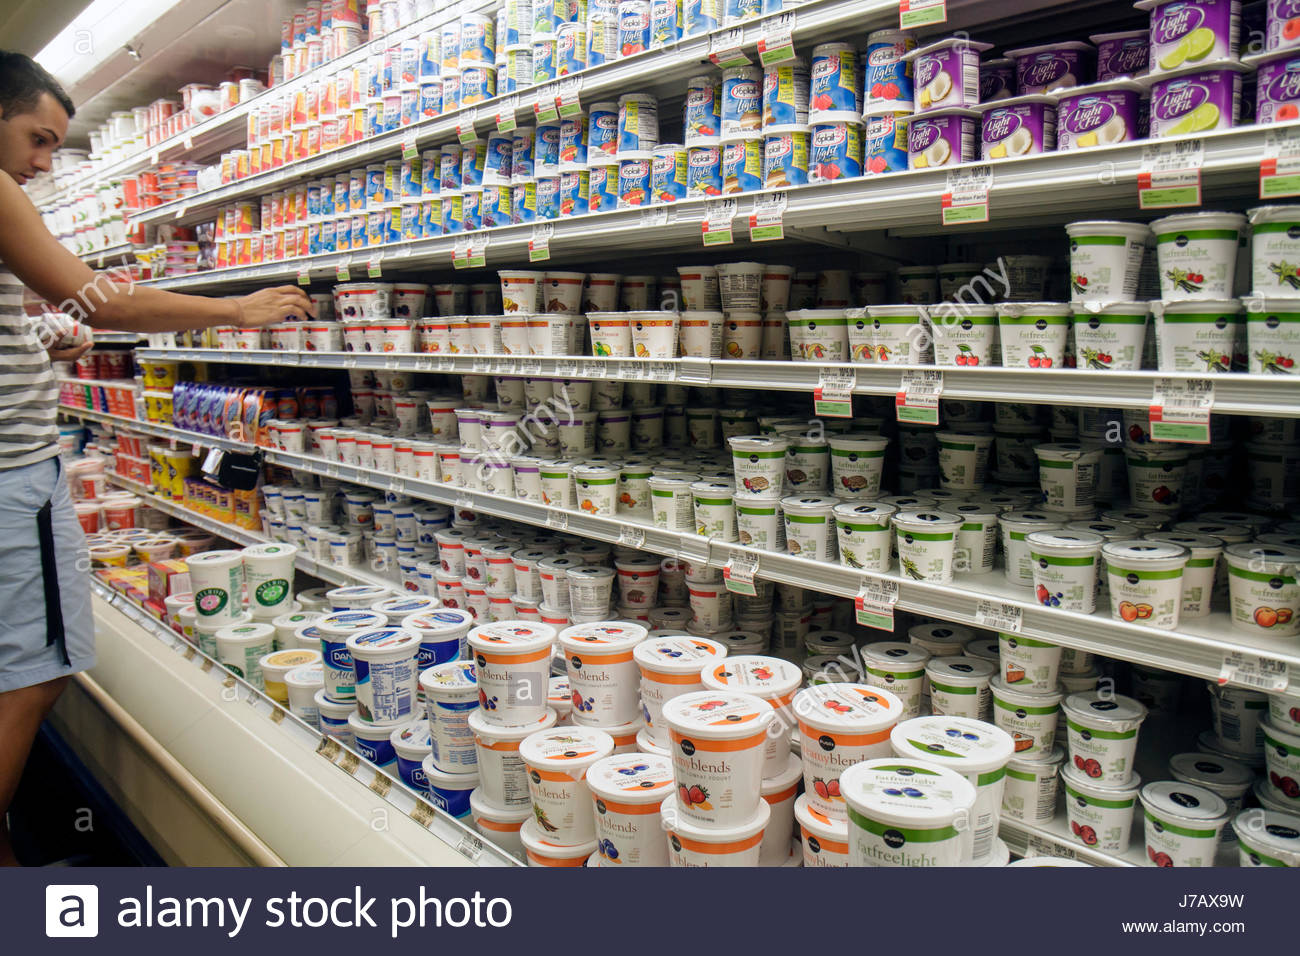 Miami Beach Florida Publix grocery store supermarket food business retail display for sale competing brands shopping - Stock Image